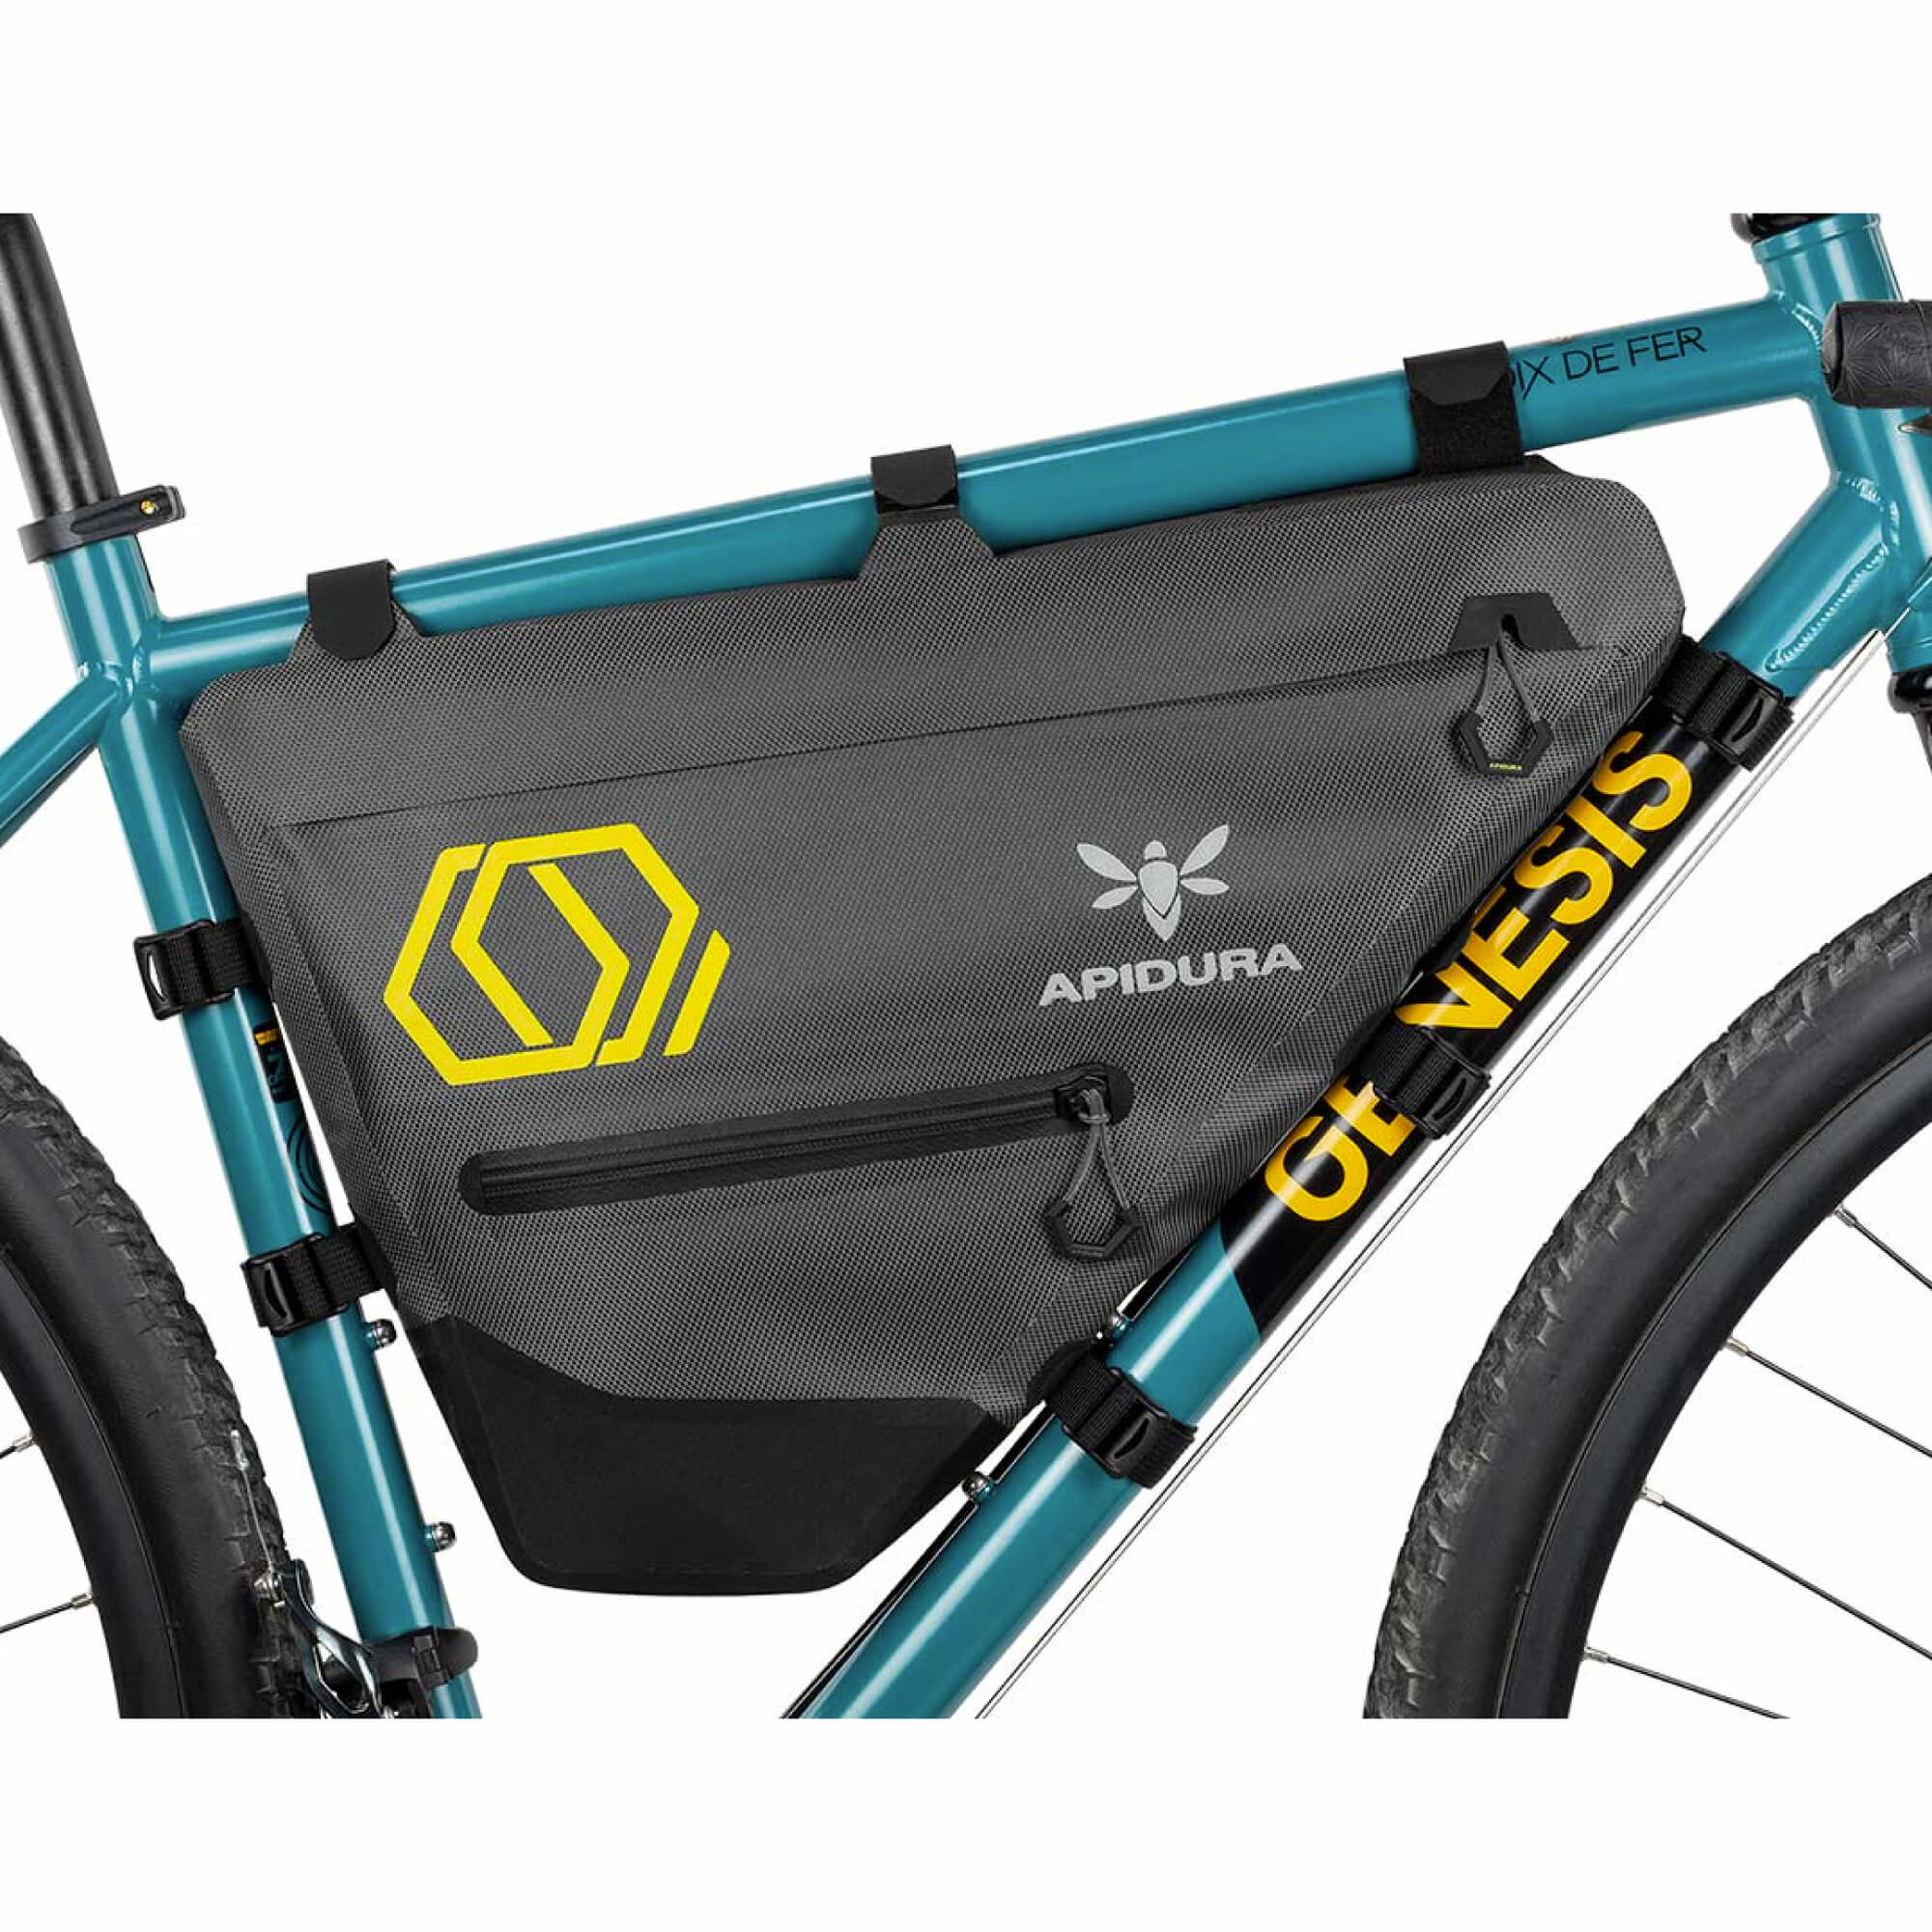 Expedition Full Frame Pack 6 L-3